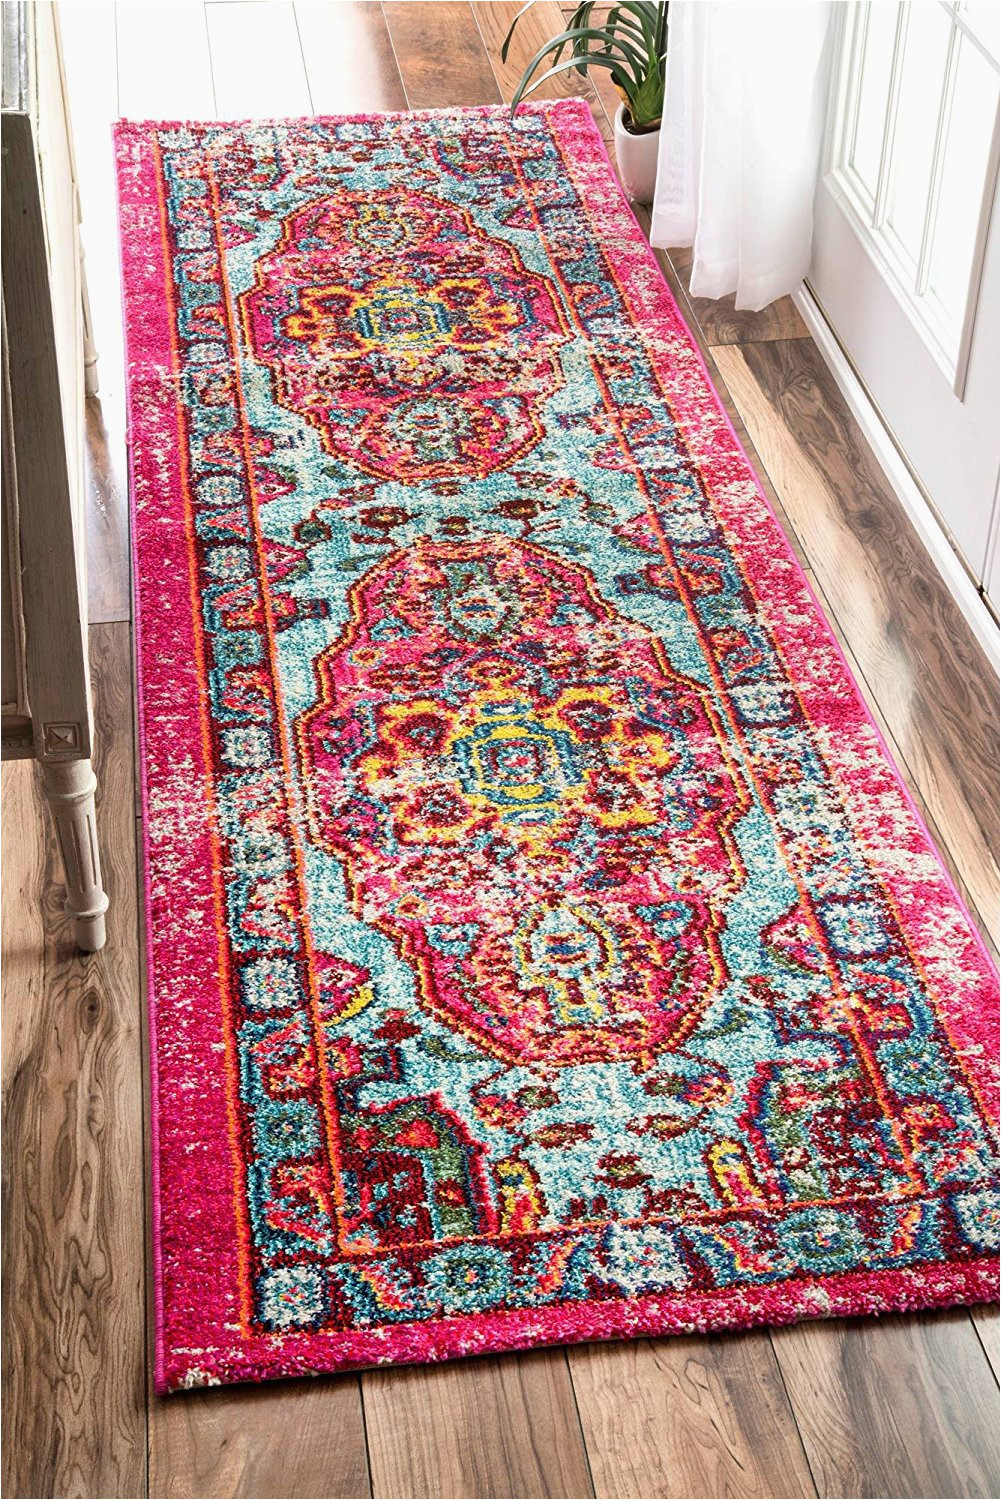 2x8 nuloom oriental vintage distressed abstract runner area rug